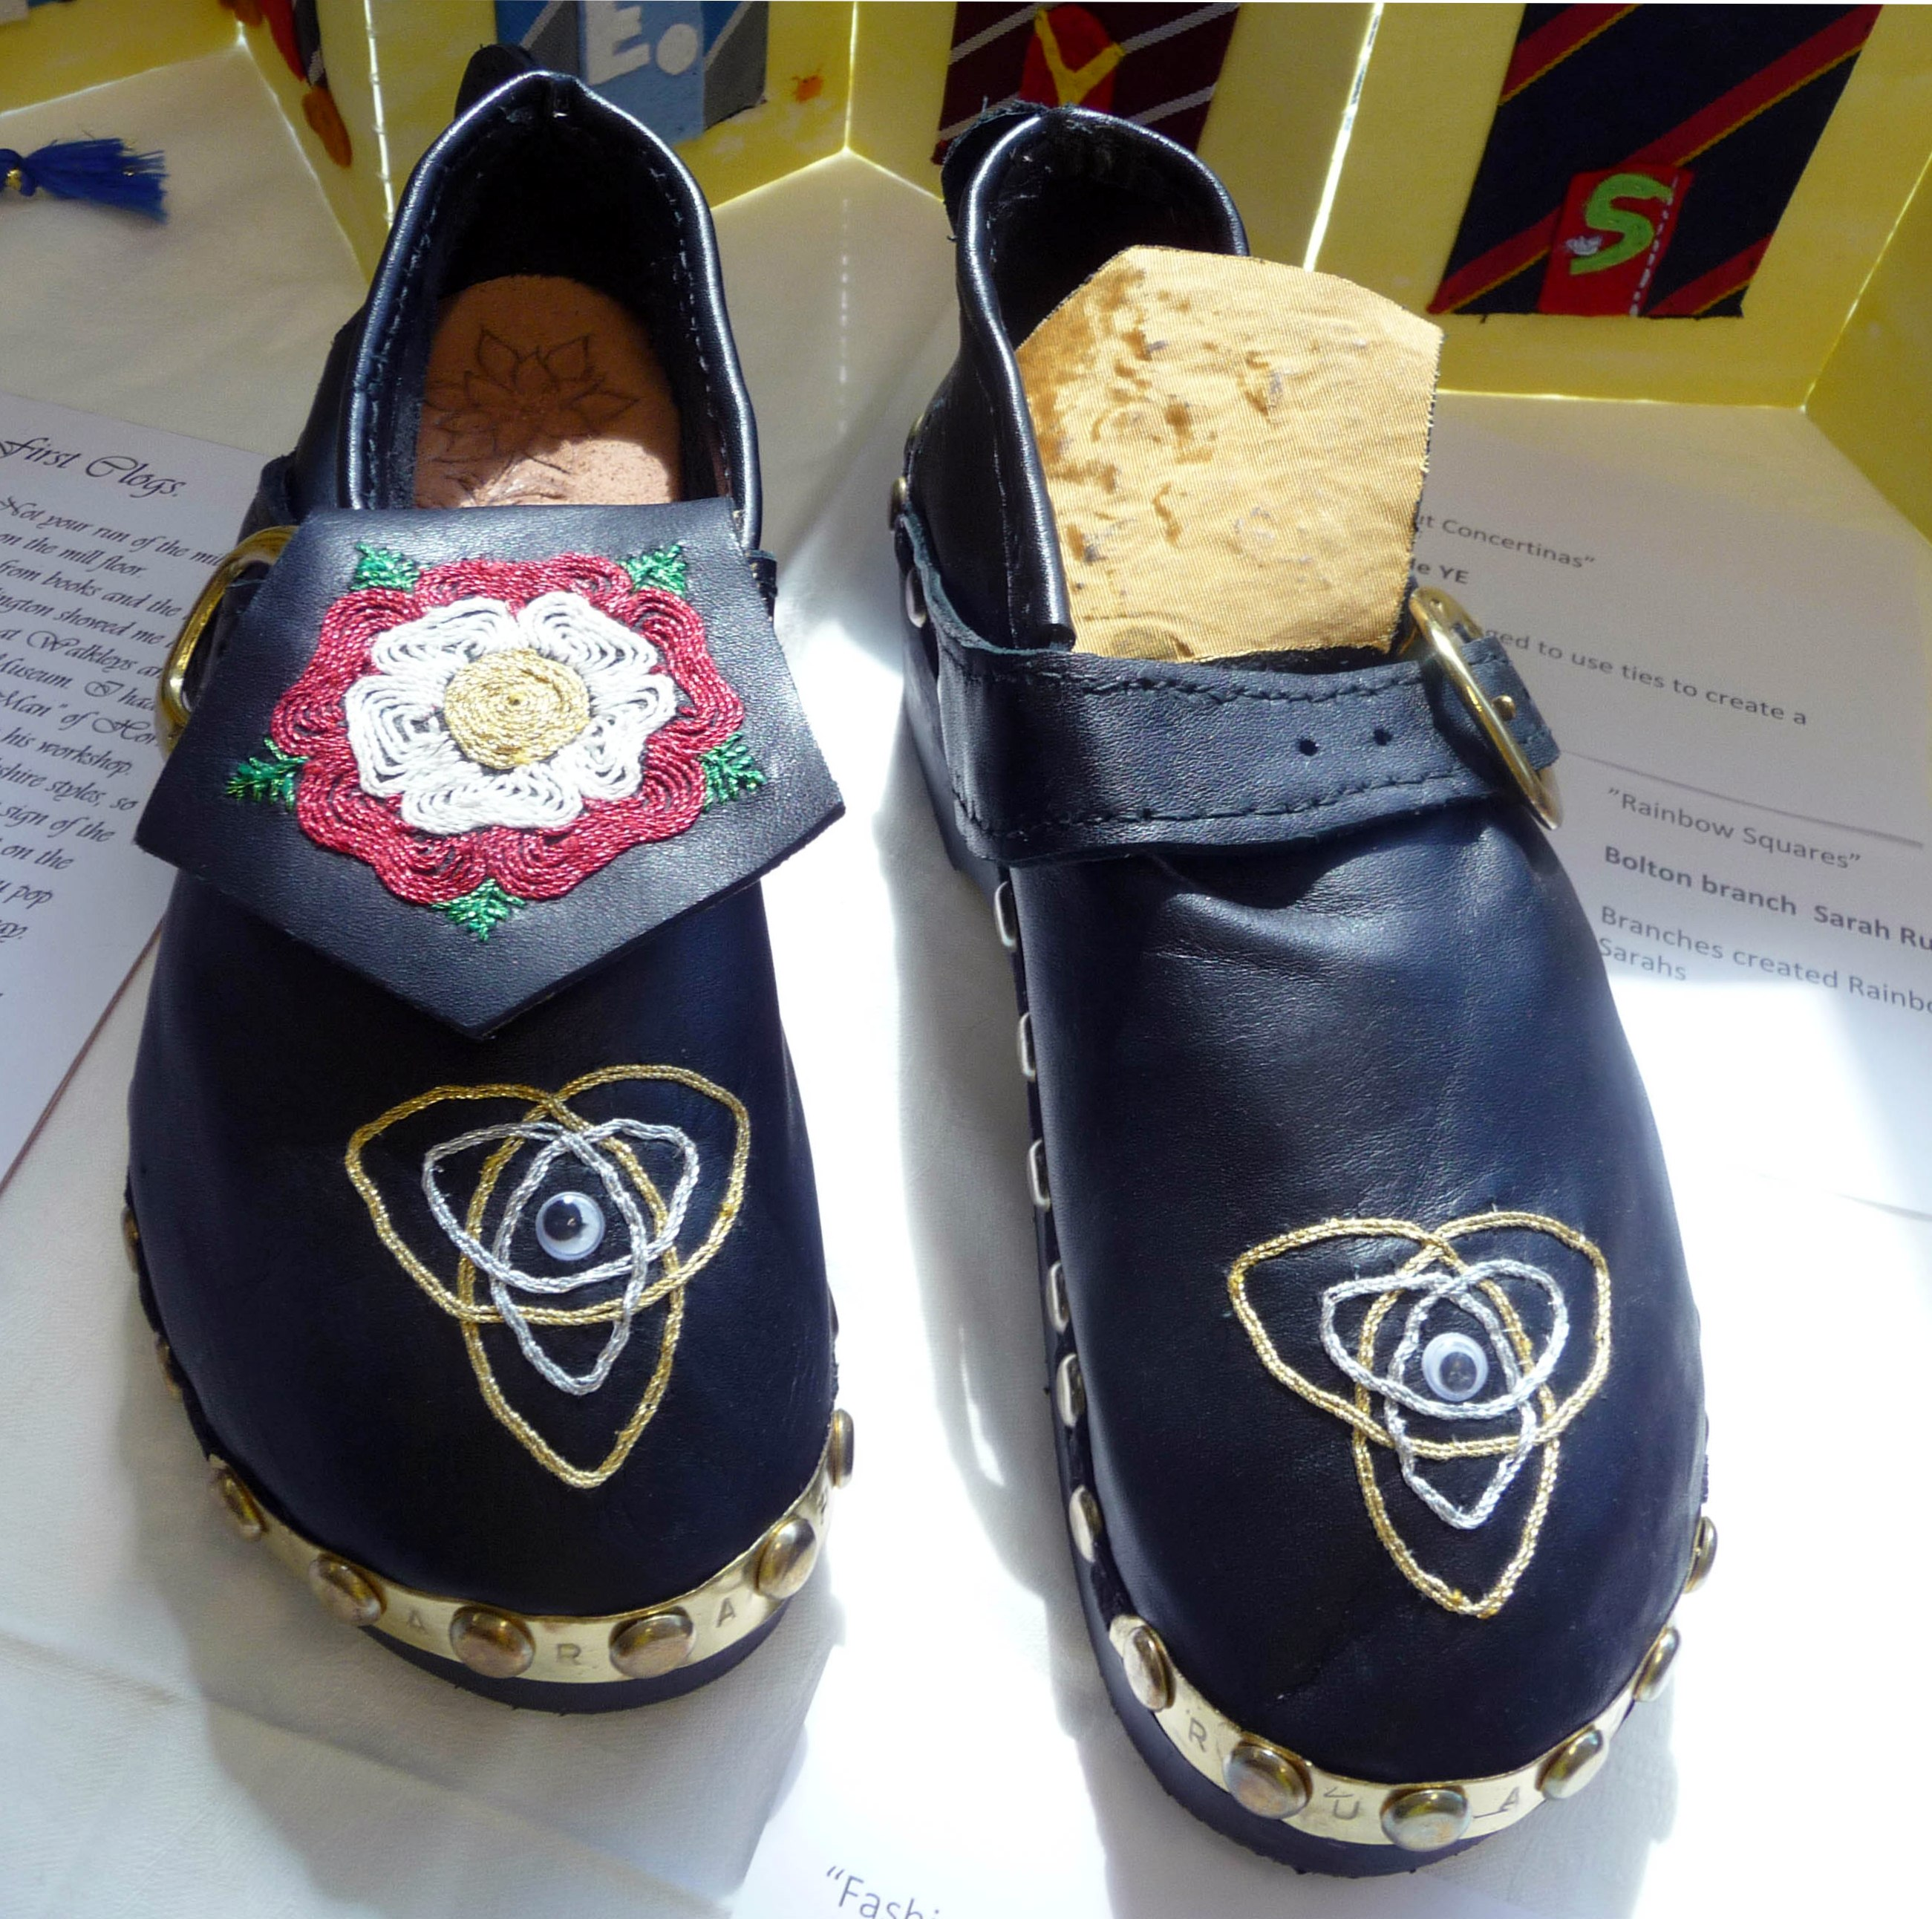 FASHION CLOGS by Sarah Ruaux, Bolton YE, woodwork and embroidery on leather